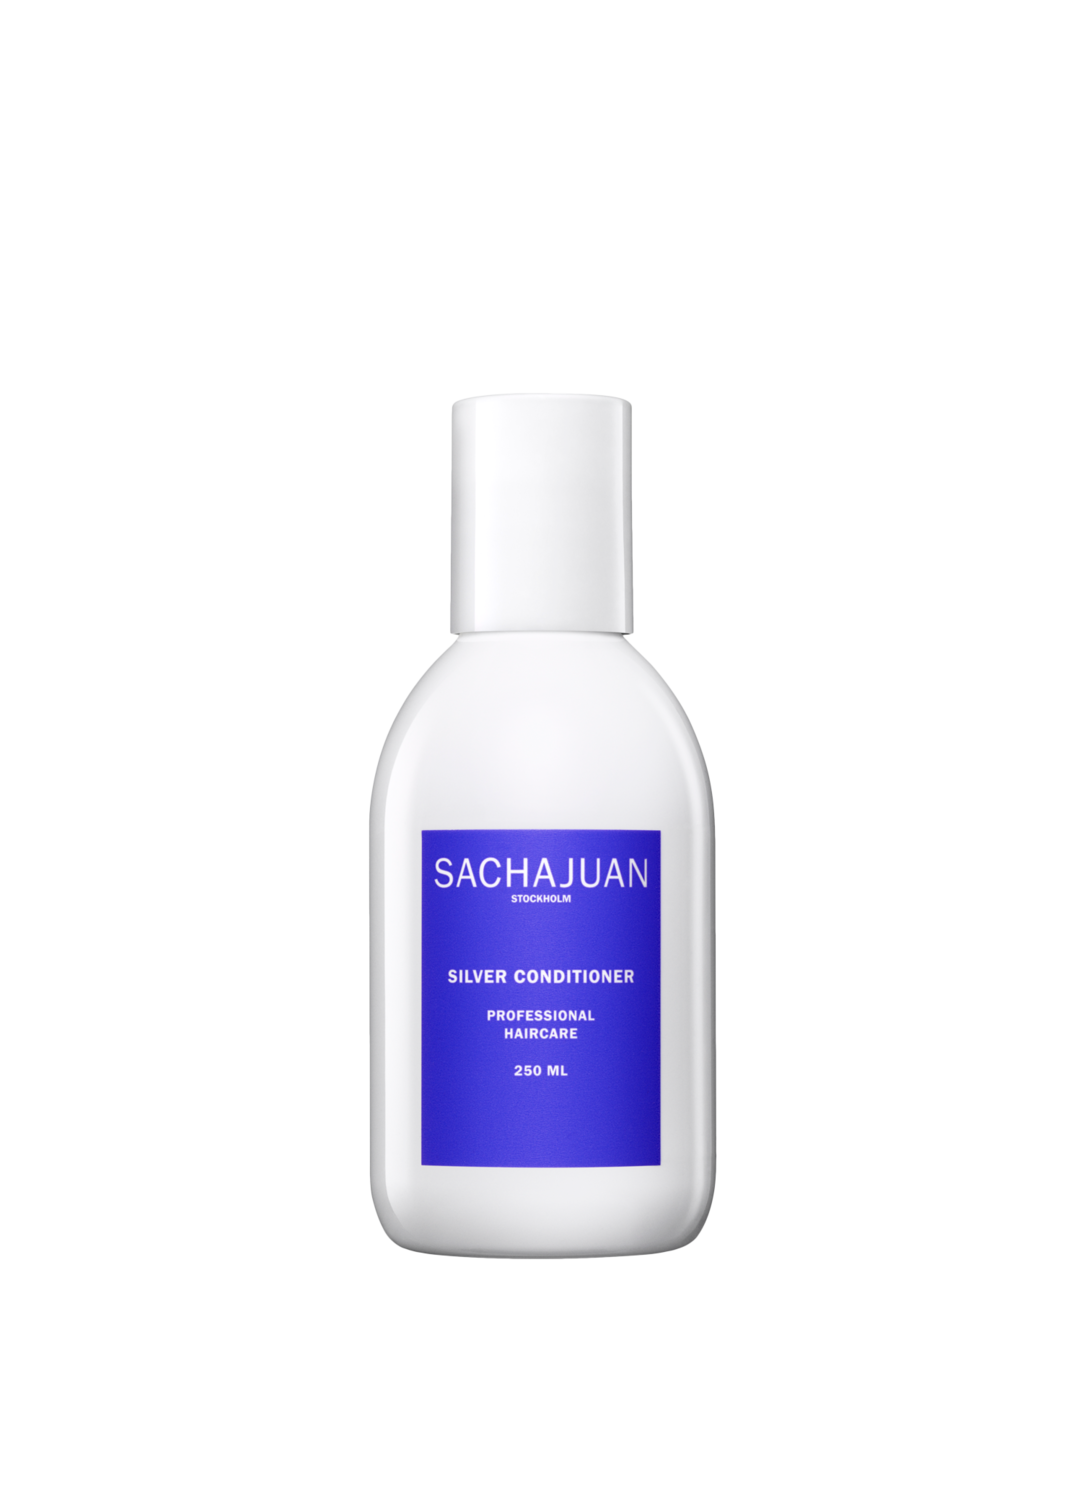 sachajuan | silver conditioner[product_type ]sachajuan - Kiss and Makeup